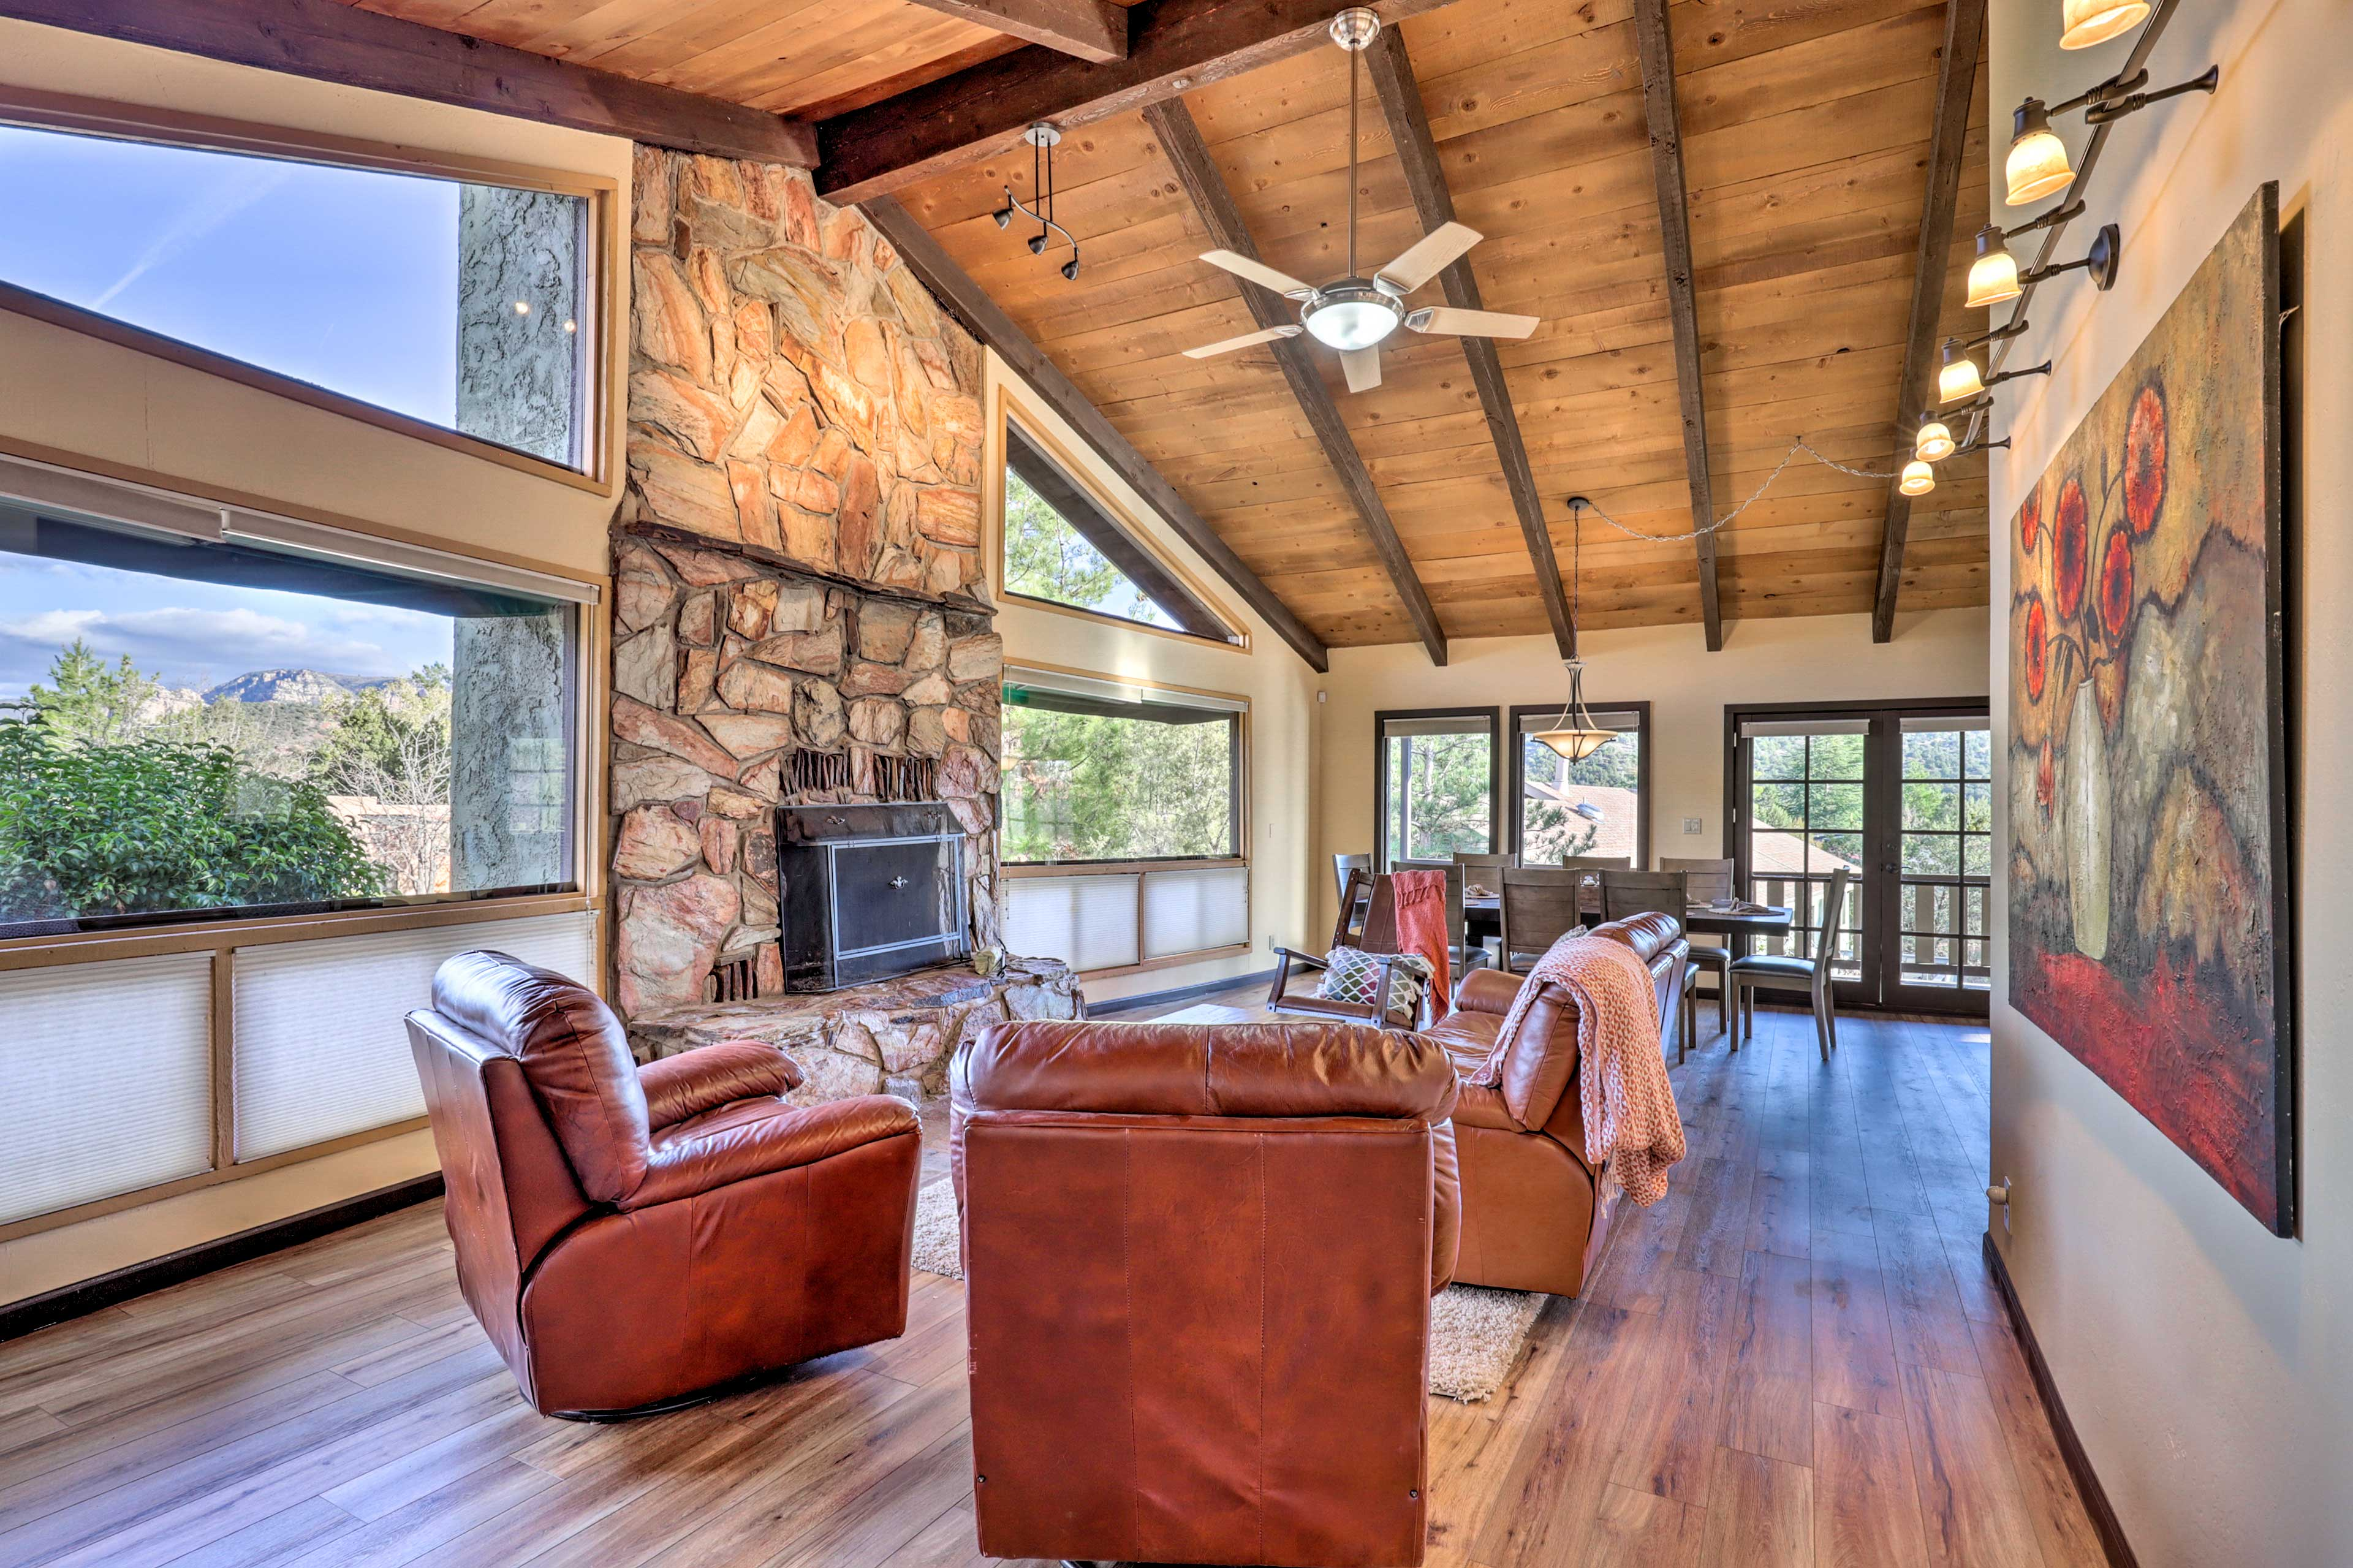 Find your home-away-from-home in this West Sedona vacation rental!